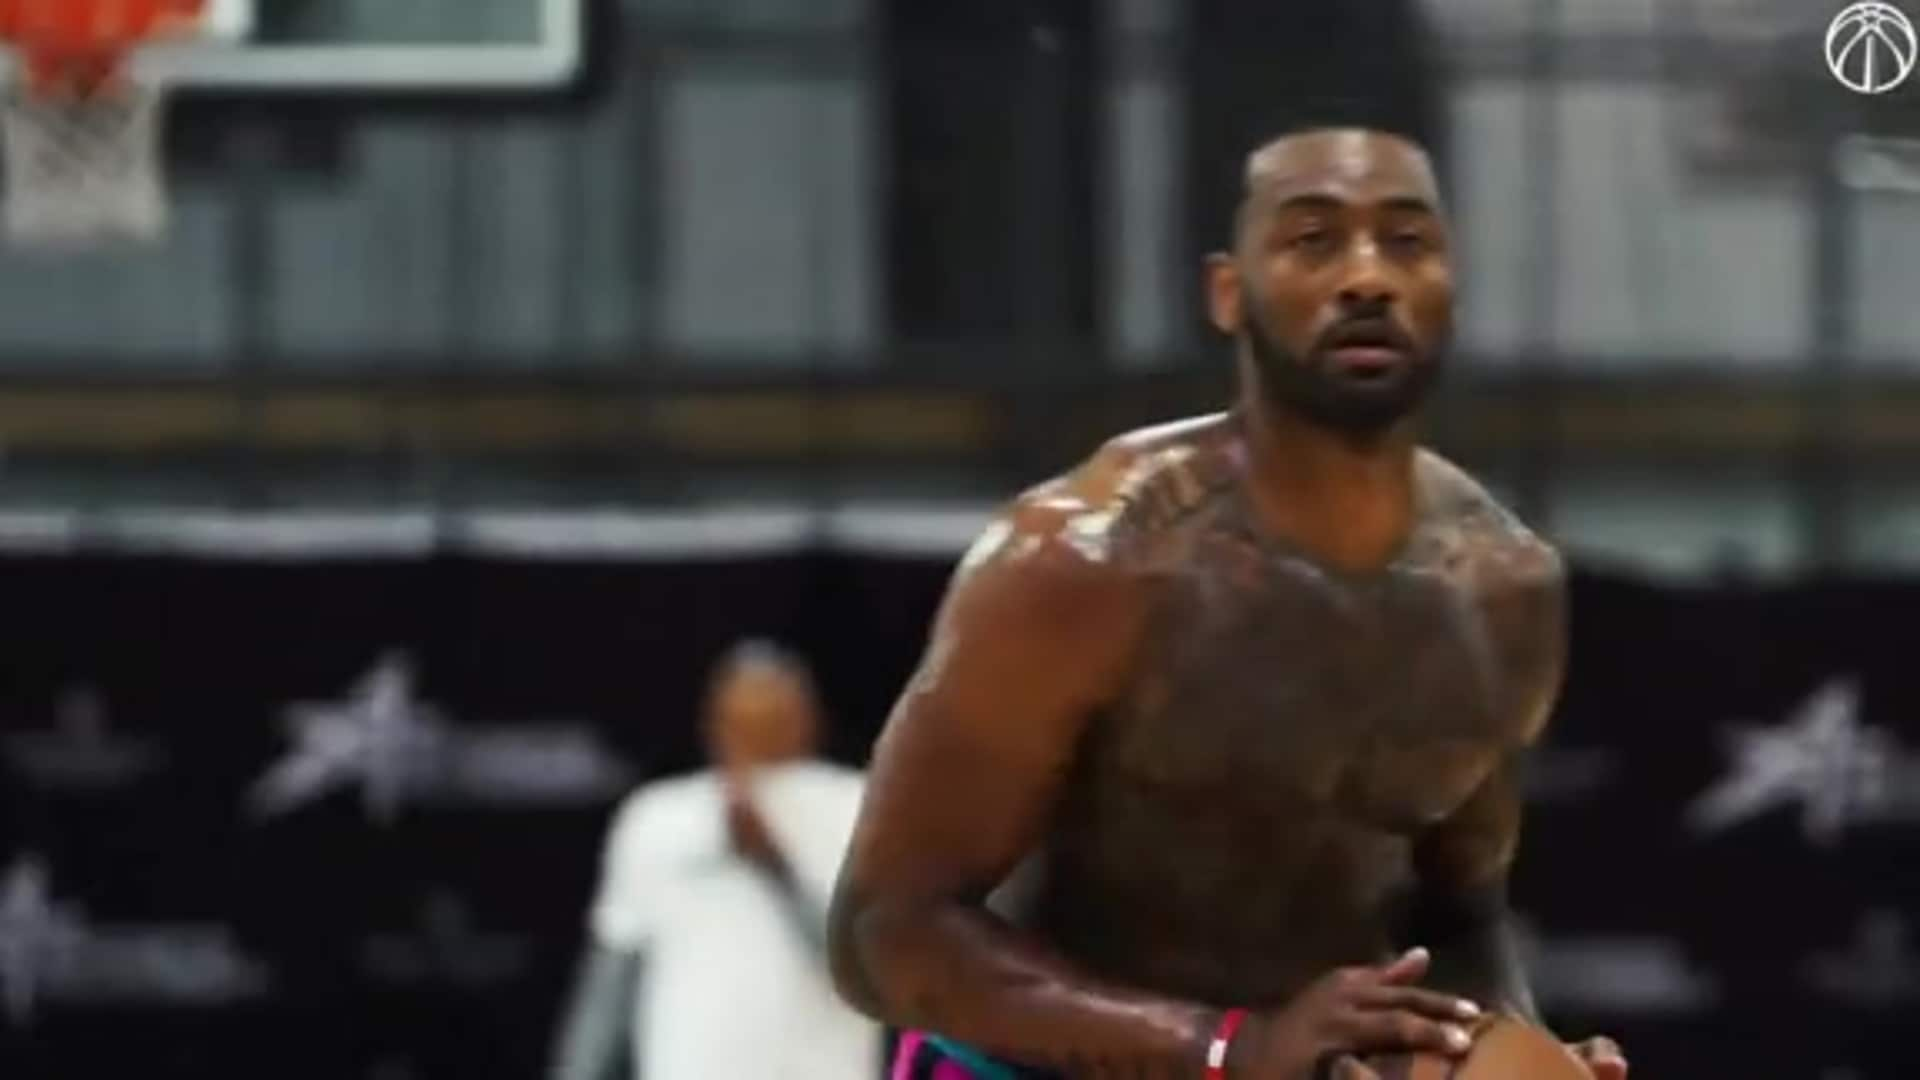 John Wall Offseason Workout - 10/28/20